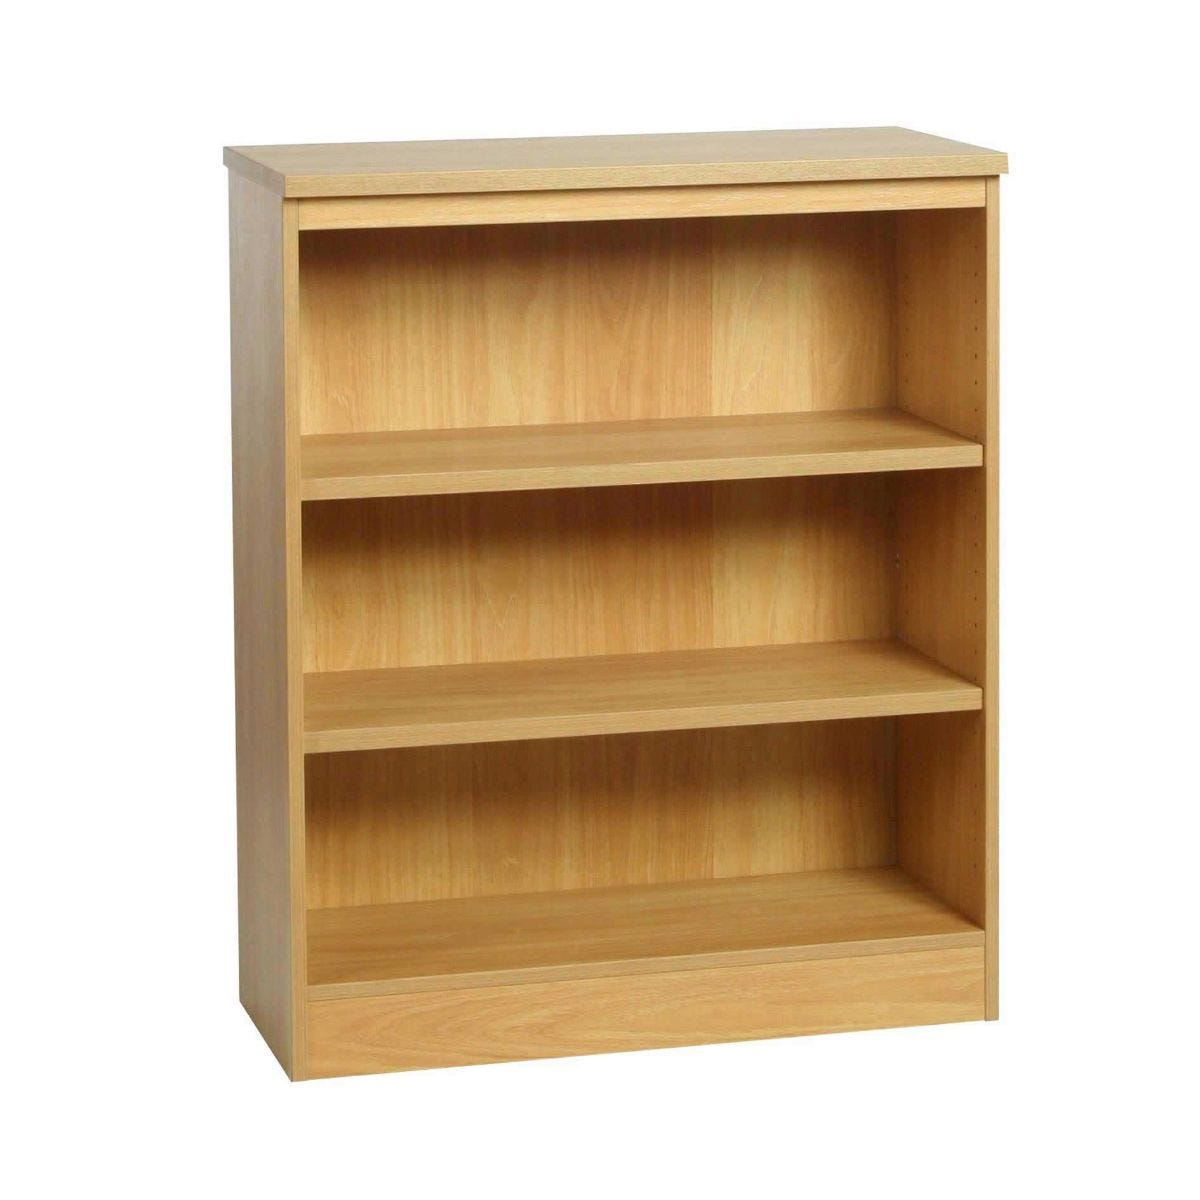 R White Mid Level Bookcase M-B85 H1032xW850xD370mm, Classic Oak